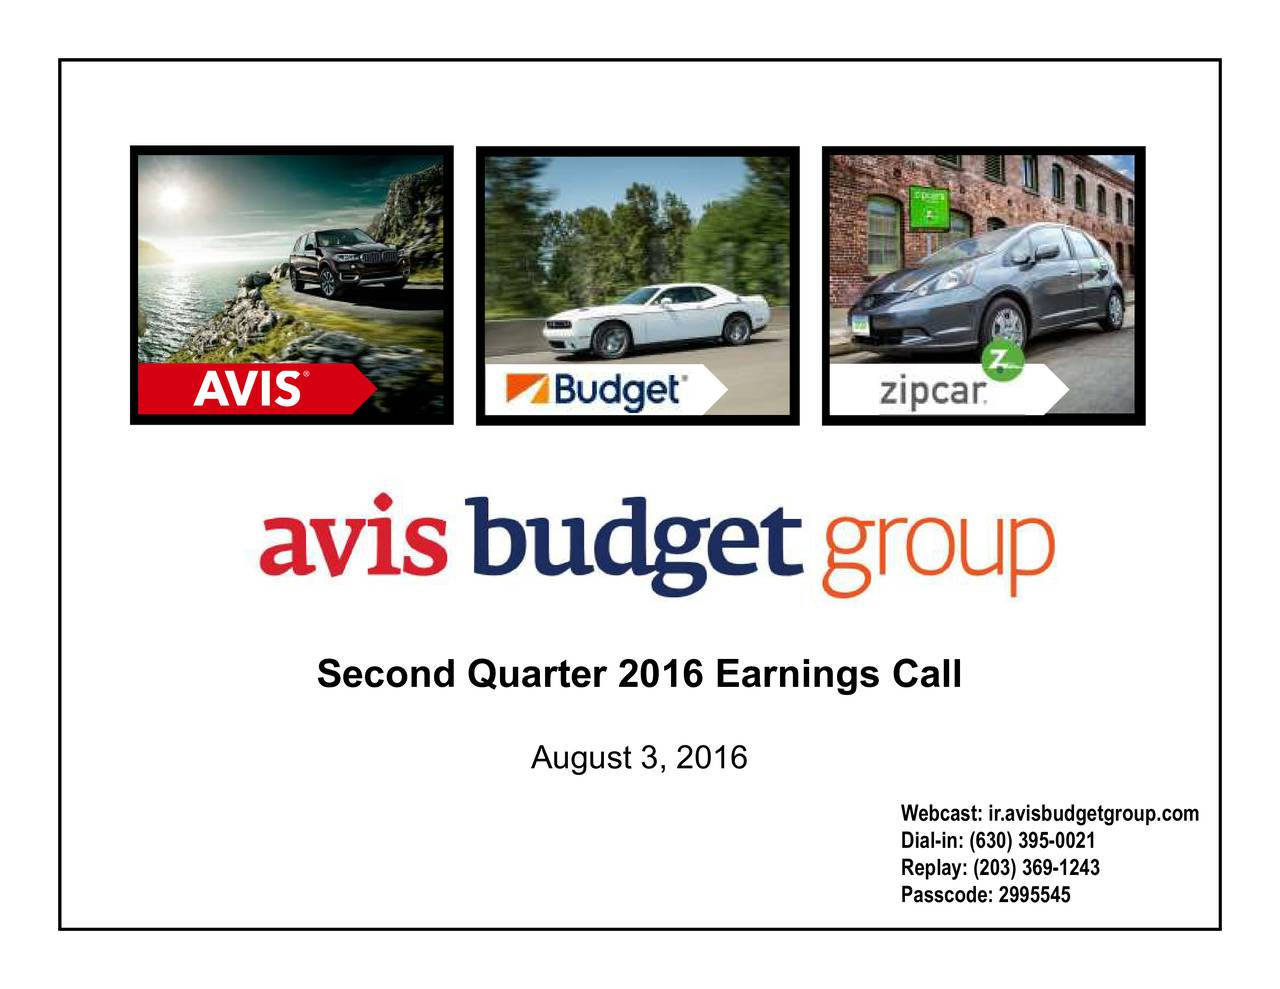 August 3, 2016 Second Quarter 2016 Earnings Call